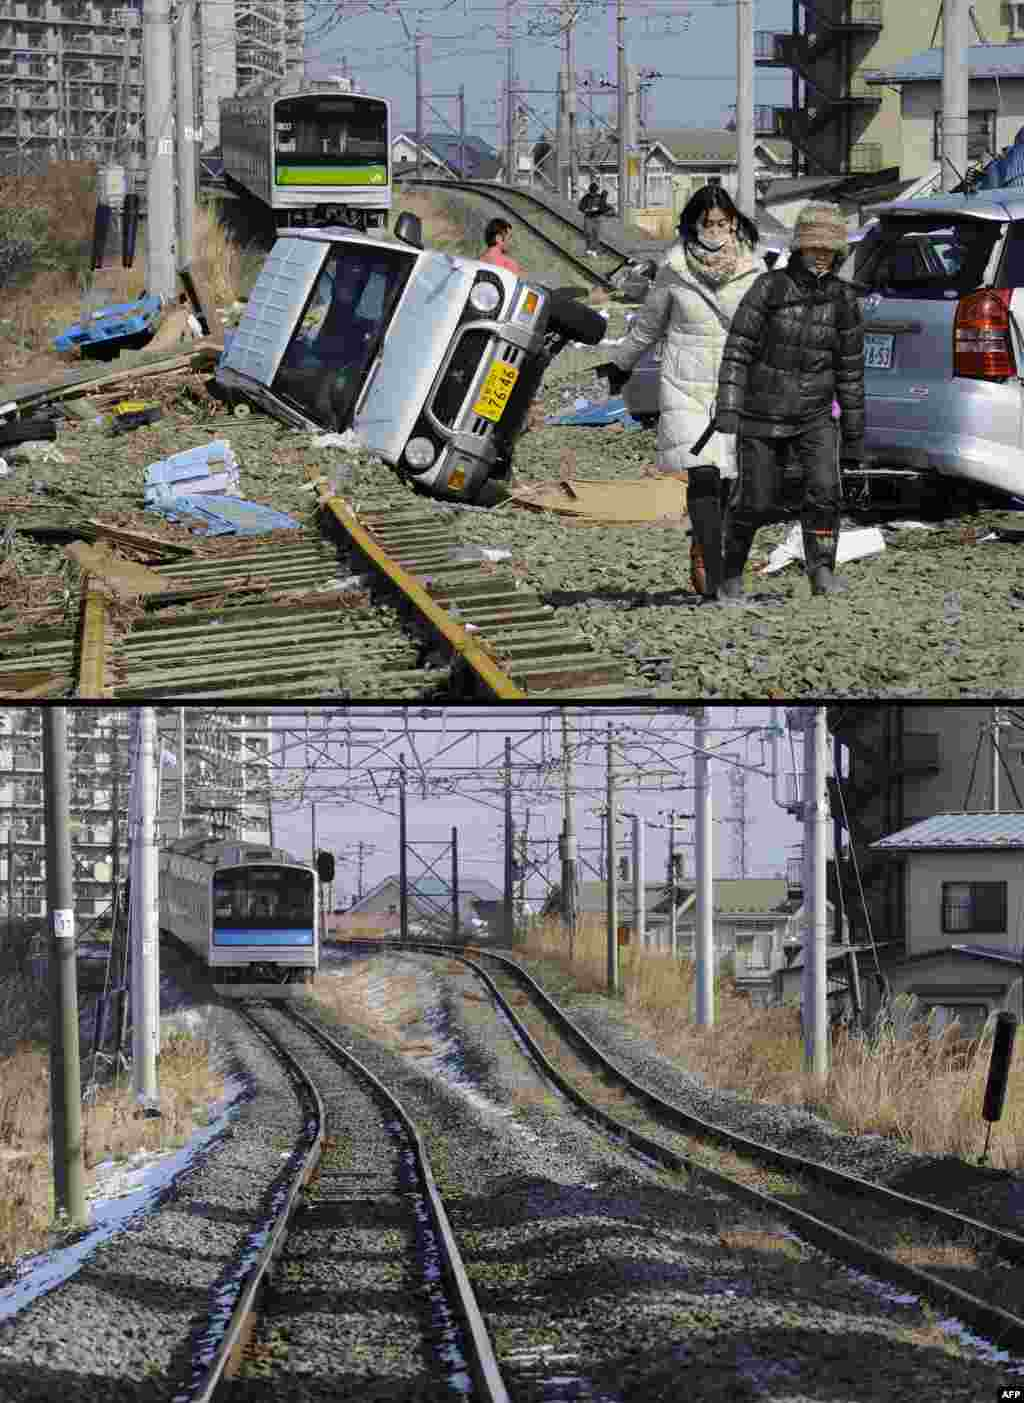 On top,  people walking on train tracks littered with cars in Tagajo, Miyagi Prefecture, on March 13, 2011, and below, the same area on January 12, 2012